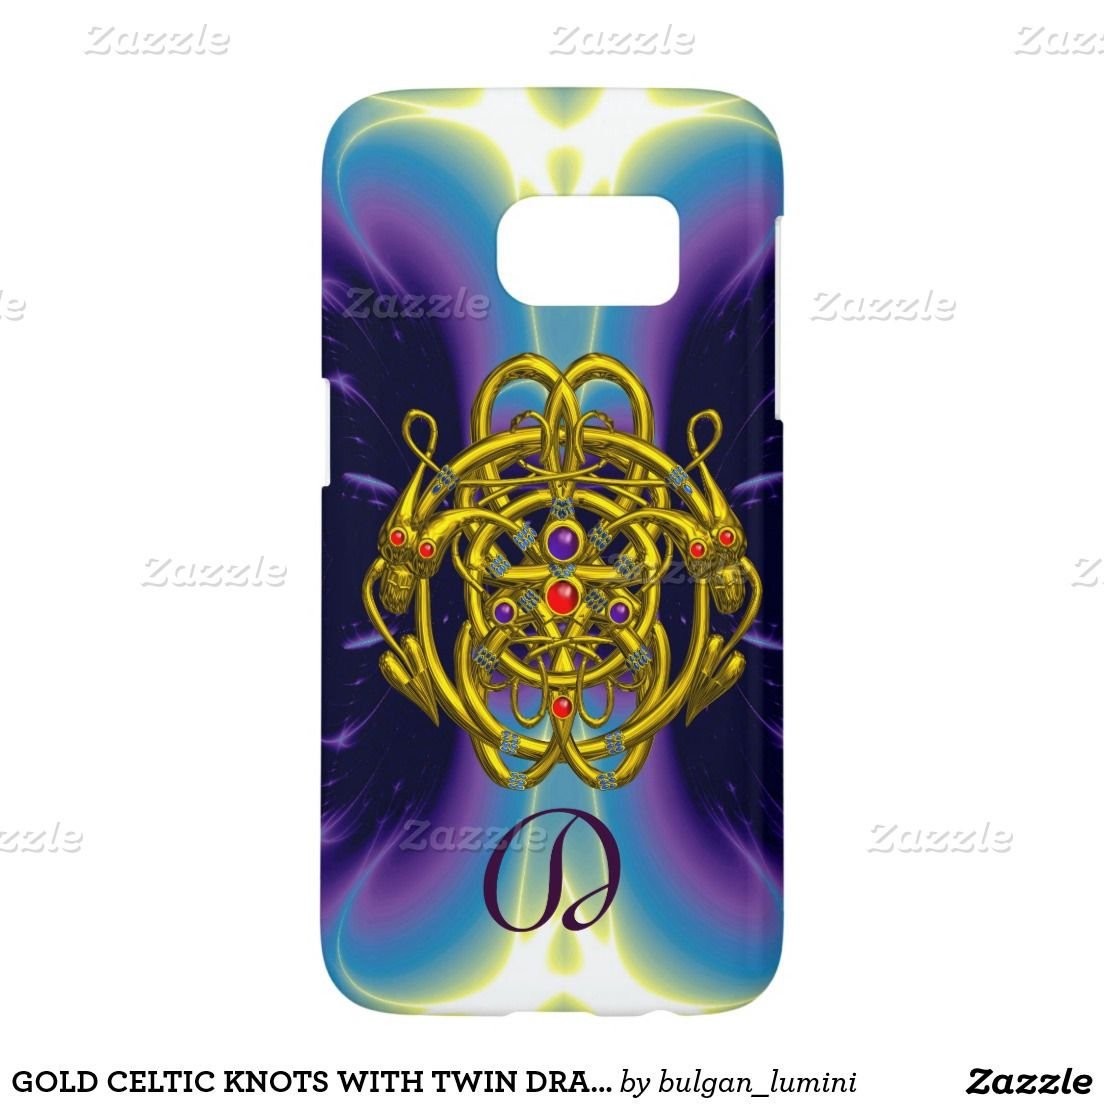 GOLD CELTIC KNOTS WITH TWIN DRAGONS MONOGRAM SAMSUNG GALAXY S7 CASE